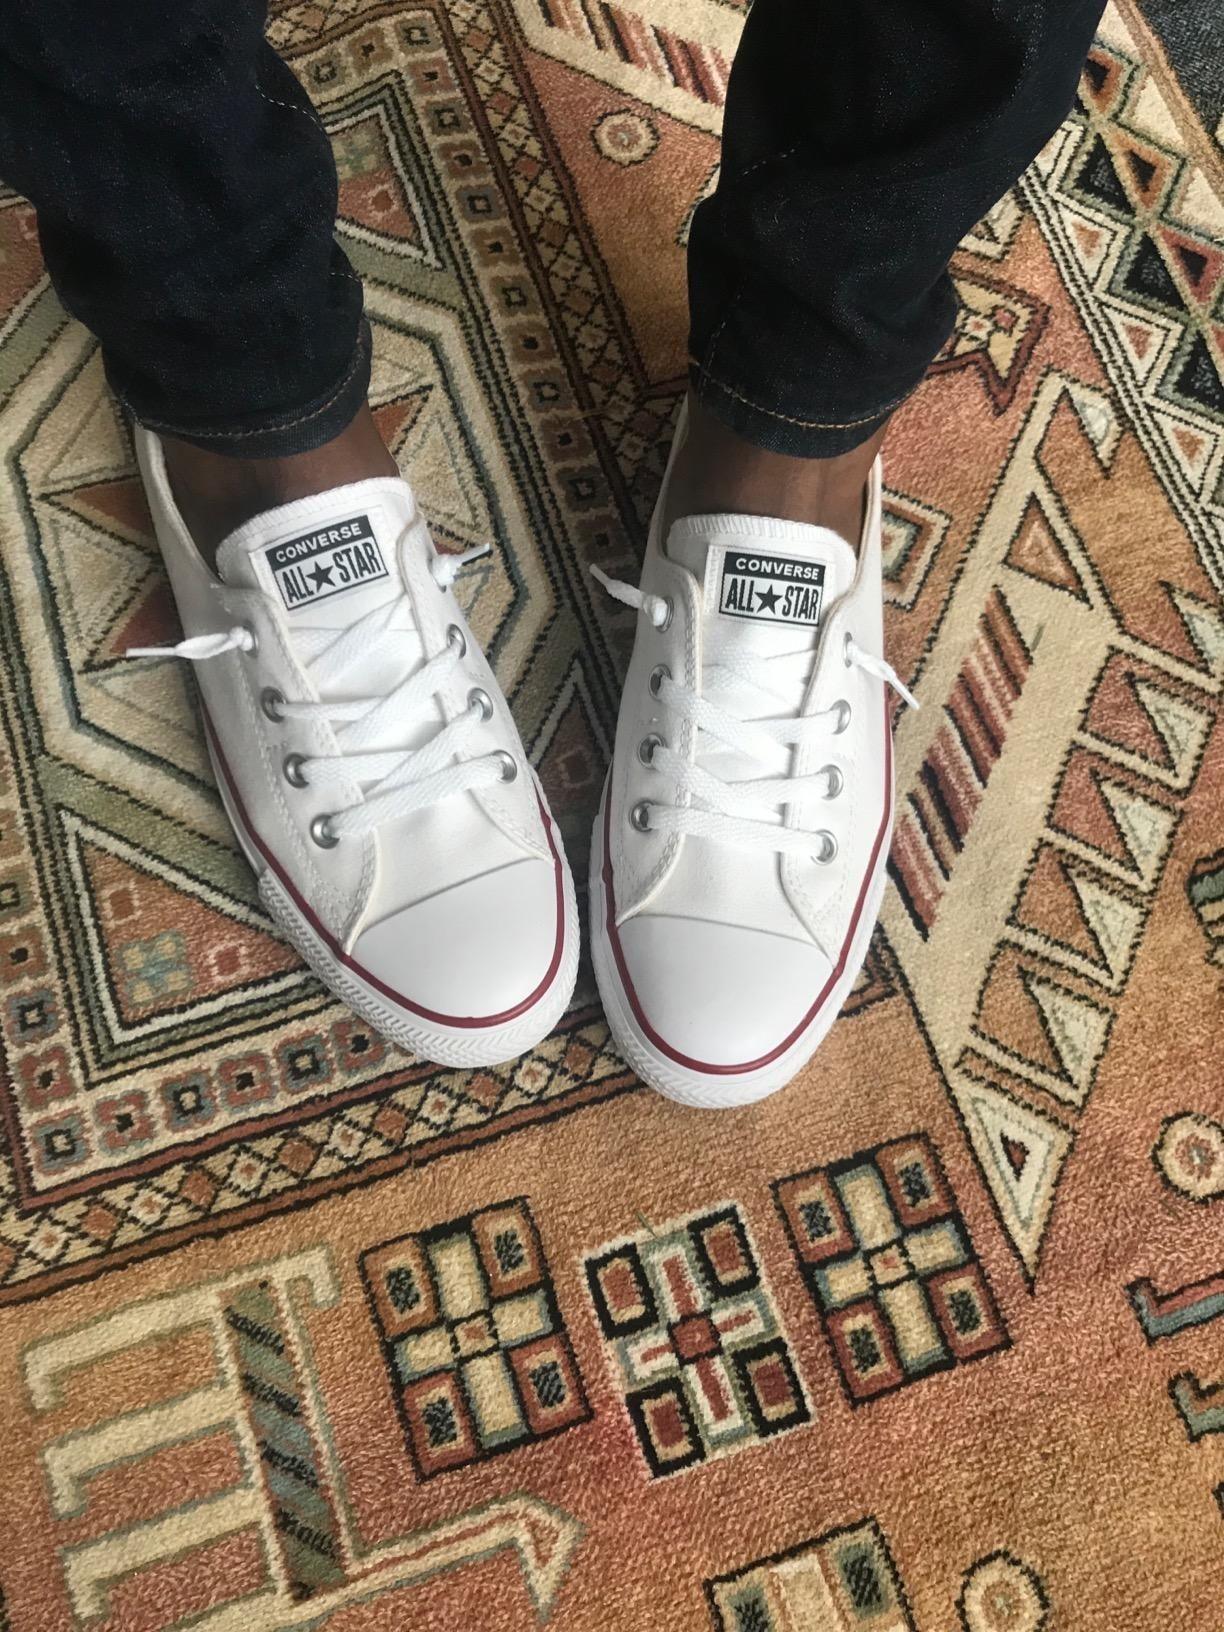 1ab180fbcc47e 22 Sneakers You Can Get On Amazon That Thousands Of People Swear By